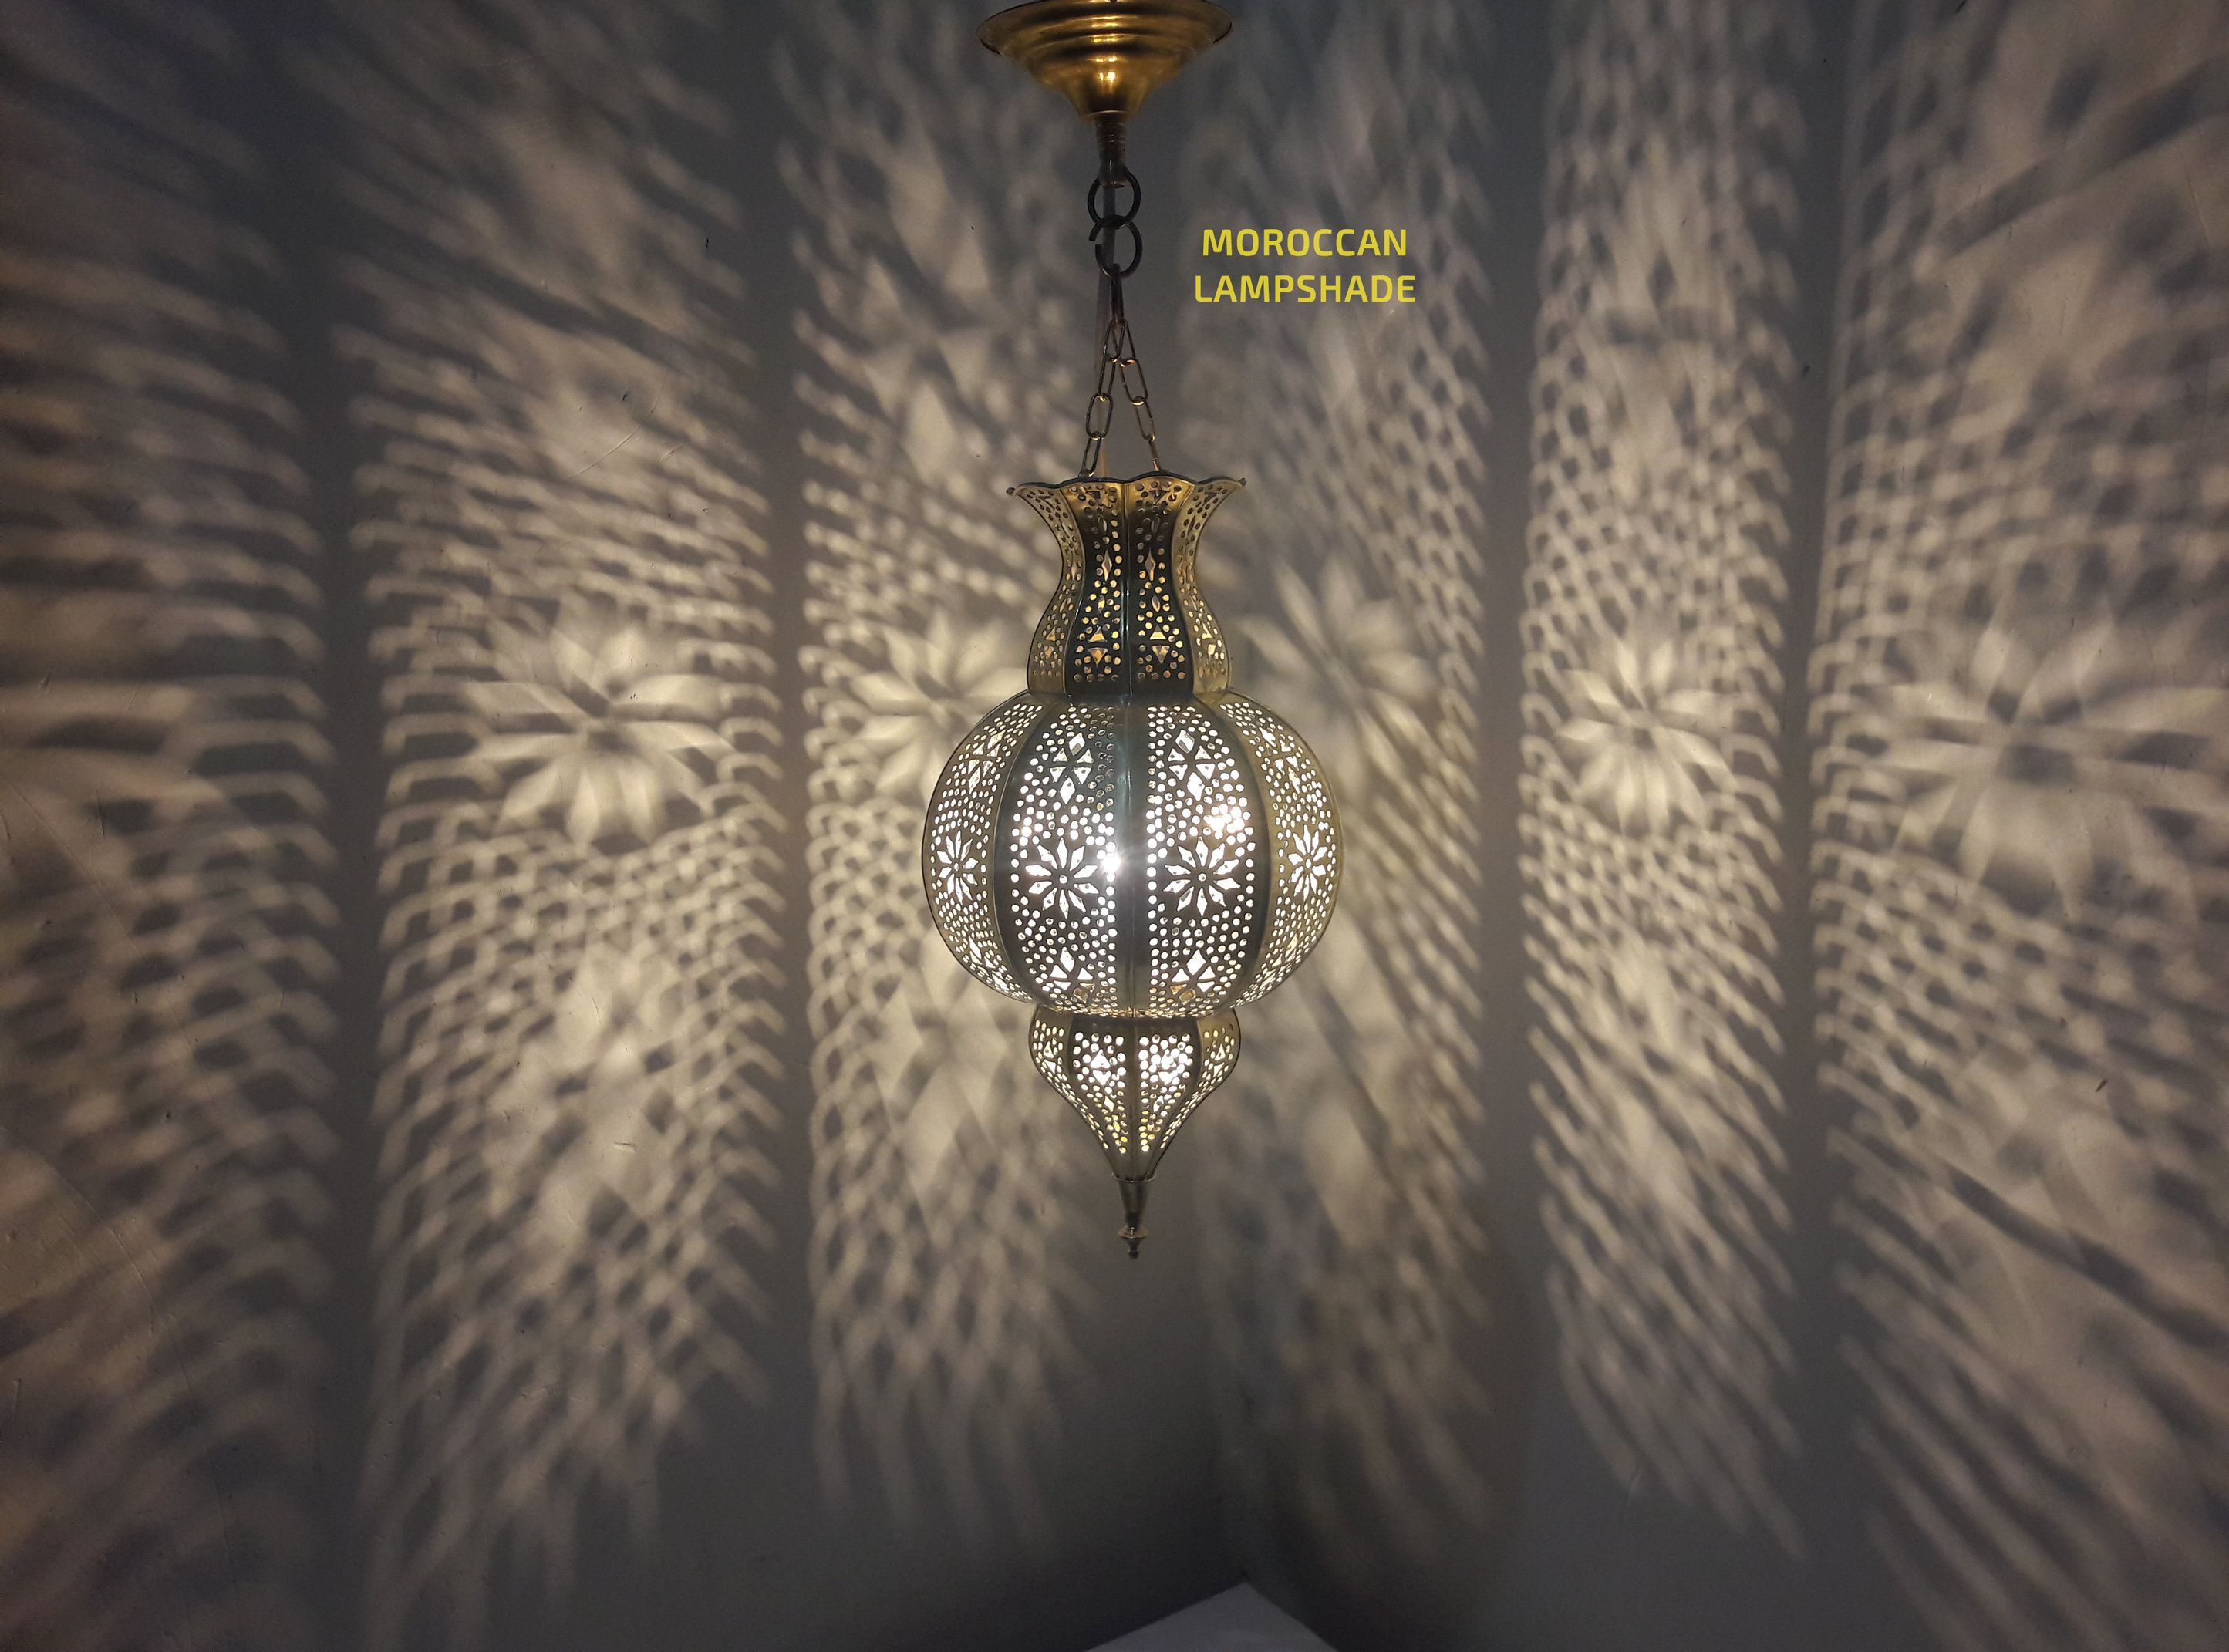 Gold Moroccan Hanging Pendant Lamp Made With Copper Brass Small But Chic In 2020 Messing Hange Lampe Lampe